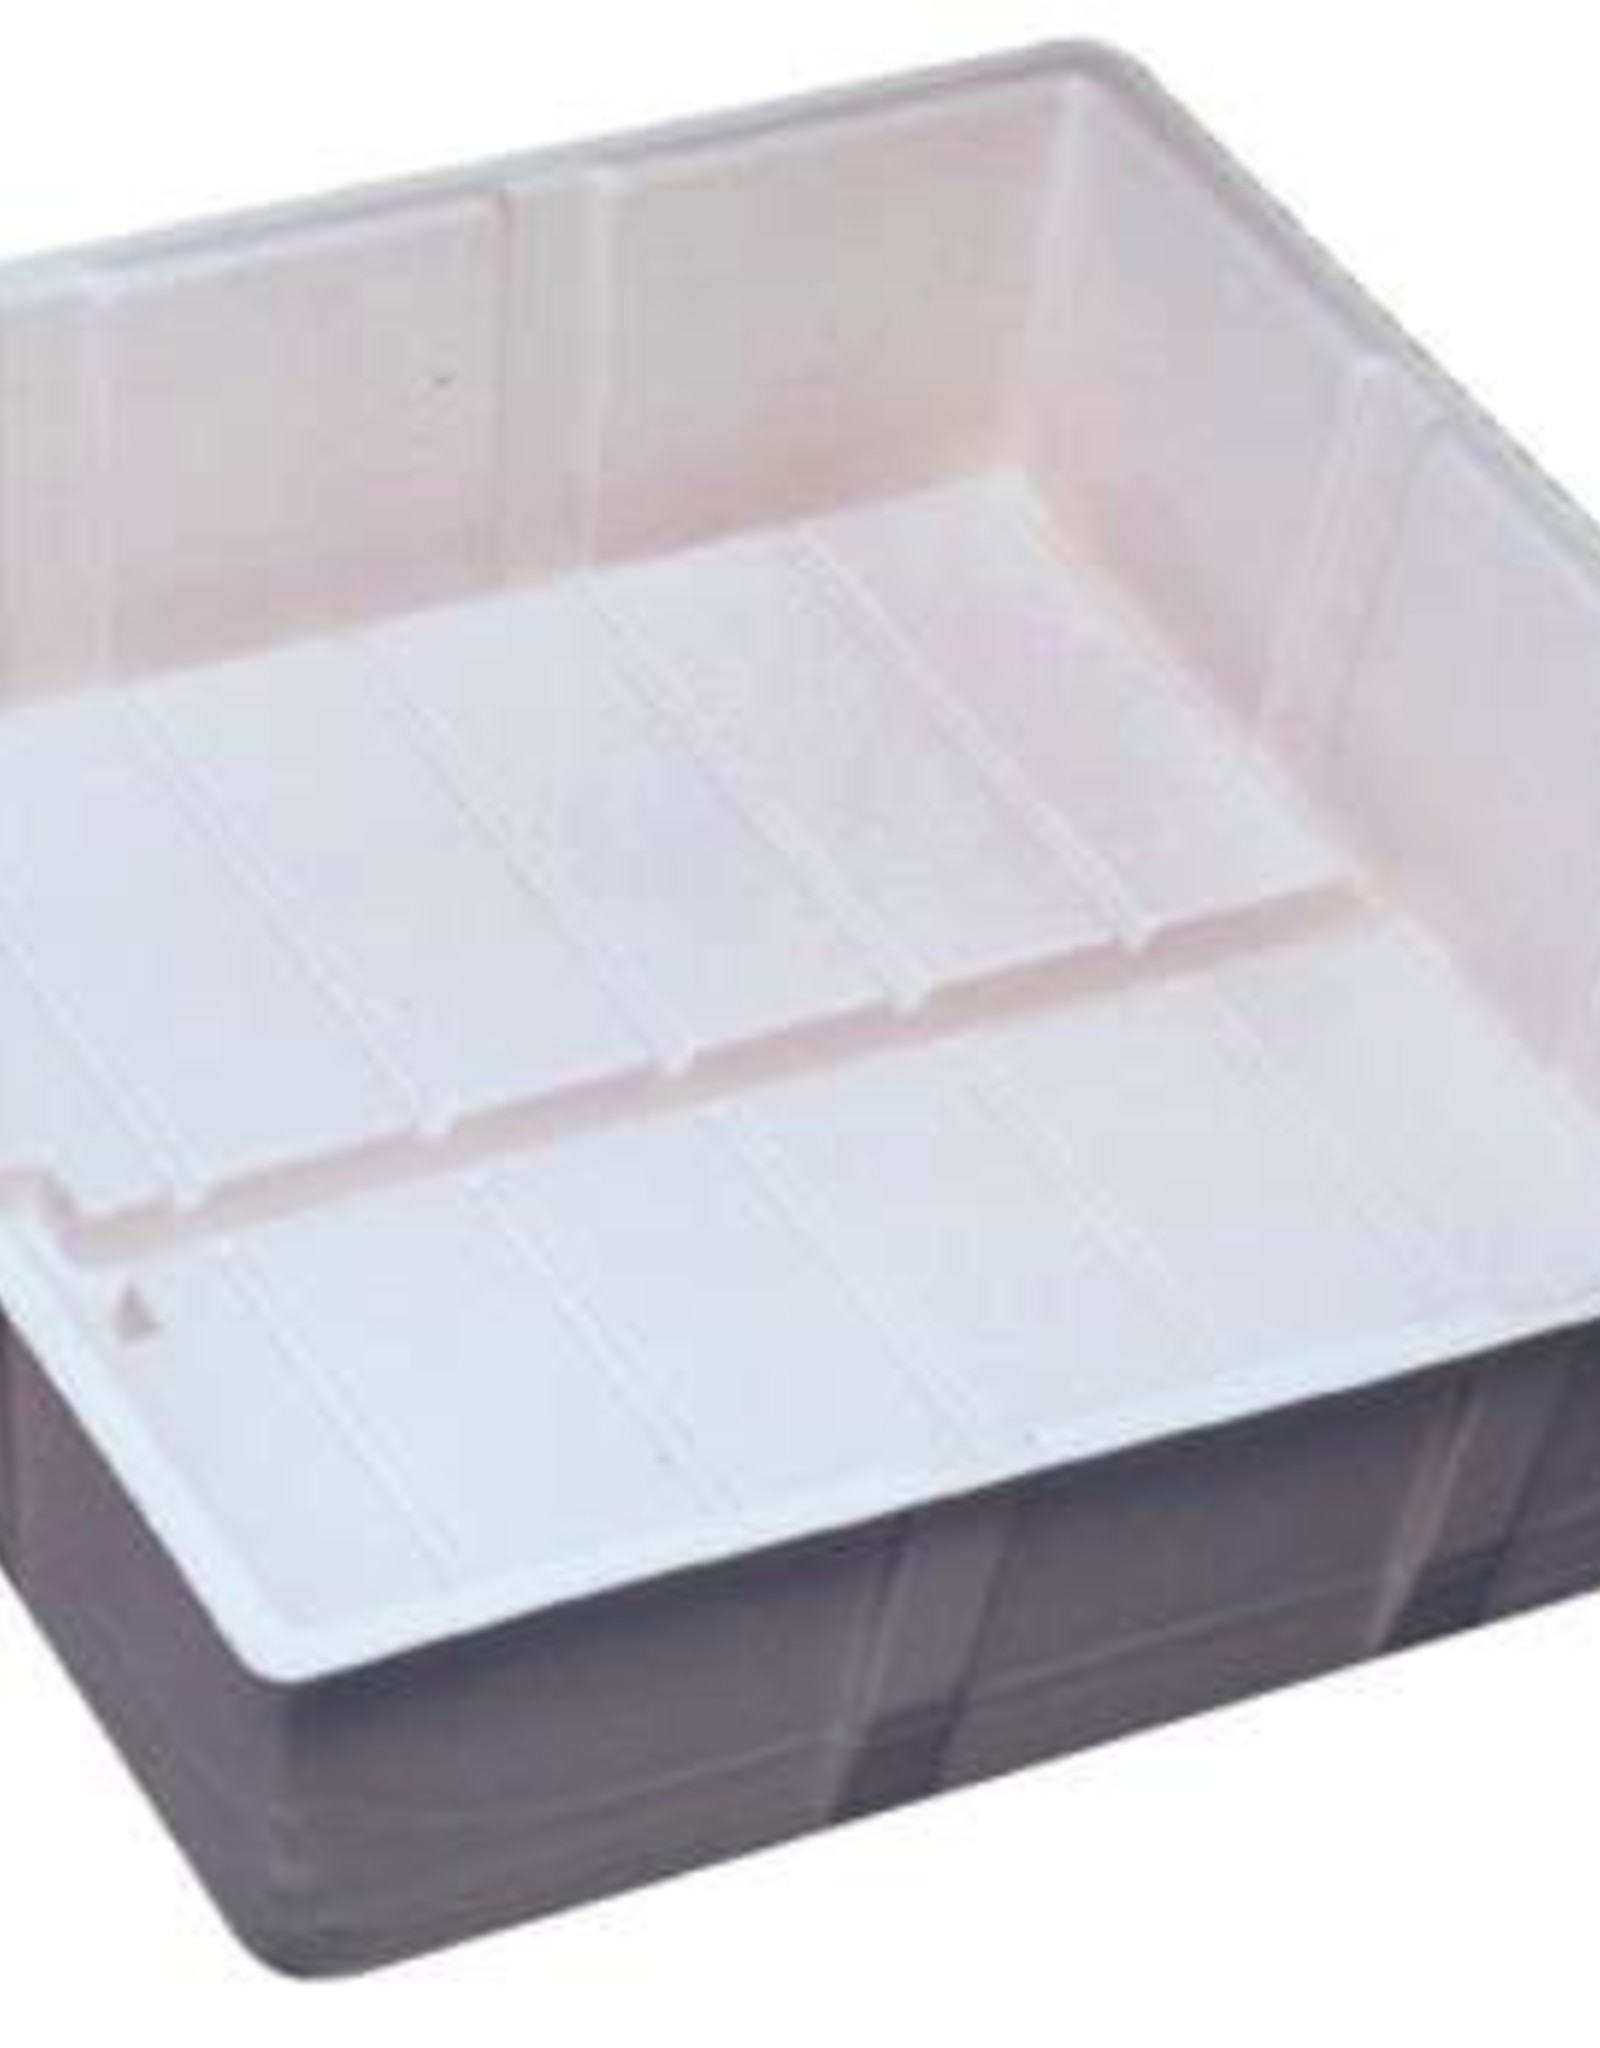 BOTANICARE Botanicare propagation trays are unrivaled in their variety of sizes to suit almost any application. The trays are ideal for use with clay grow rock, rockwool or pots filled with a soilless grow substrate. We manufacture our hydroponics trays from thick,